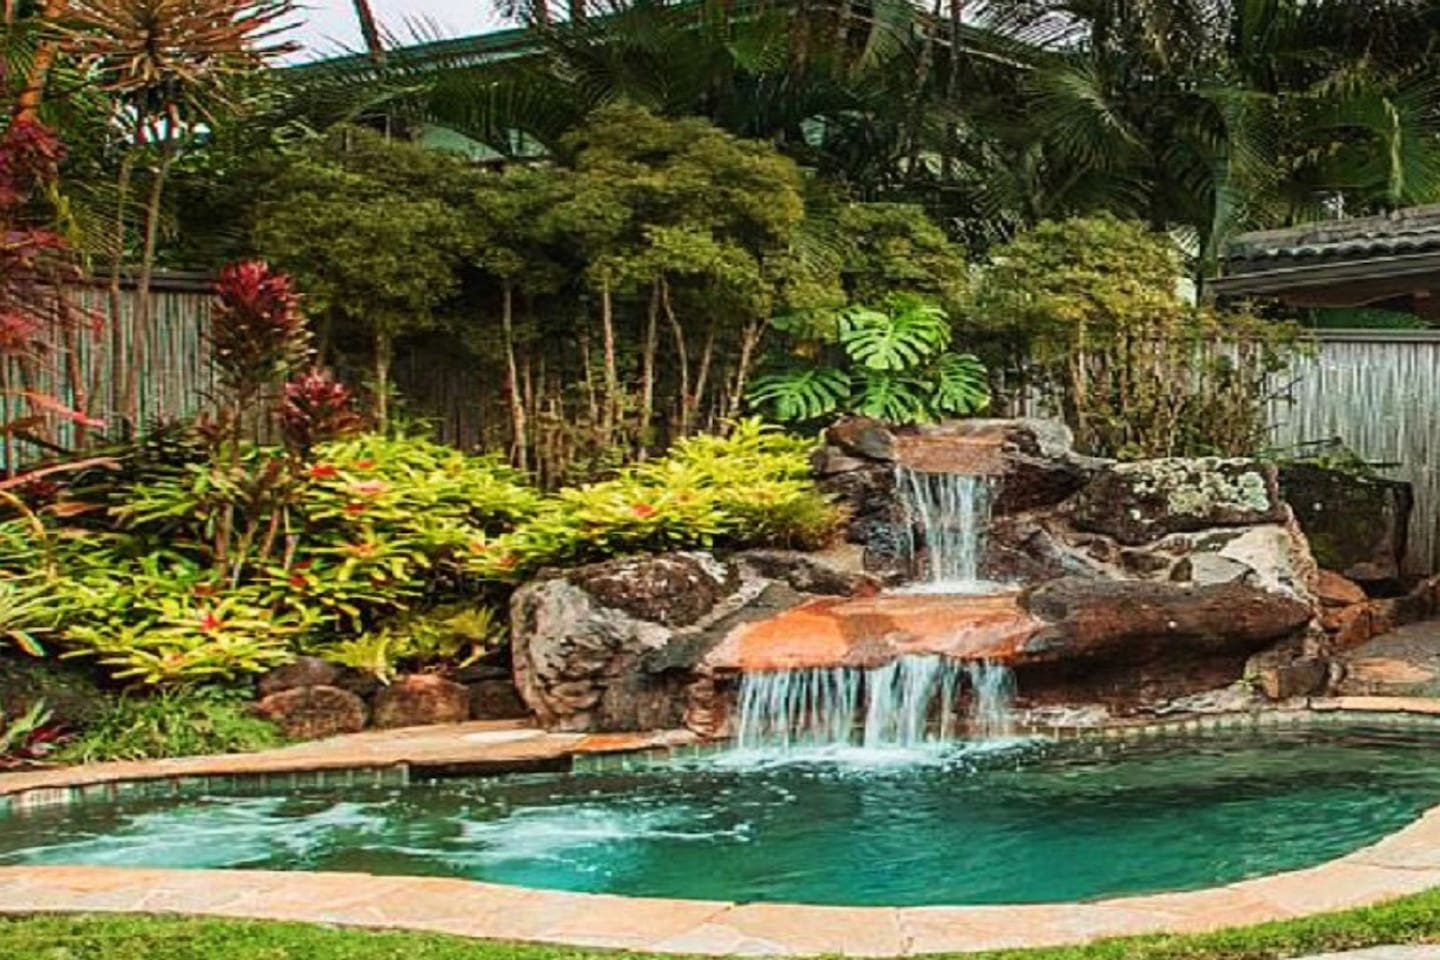 Tropical Zen Oasis - Waterfall Jacuzzi -Peaceful - Houses for Rent ...